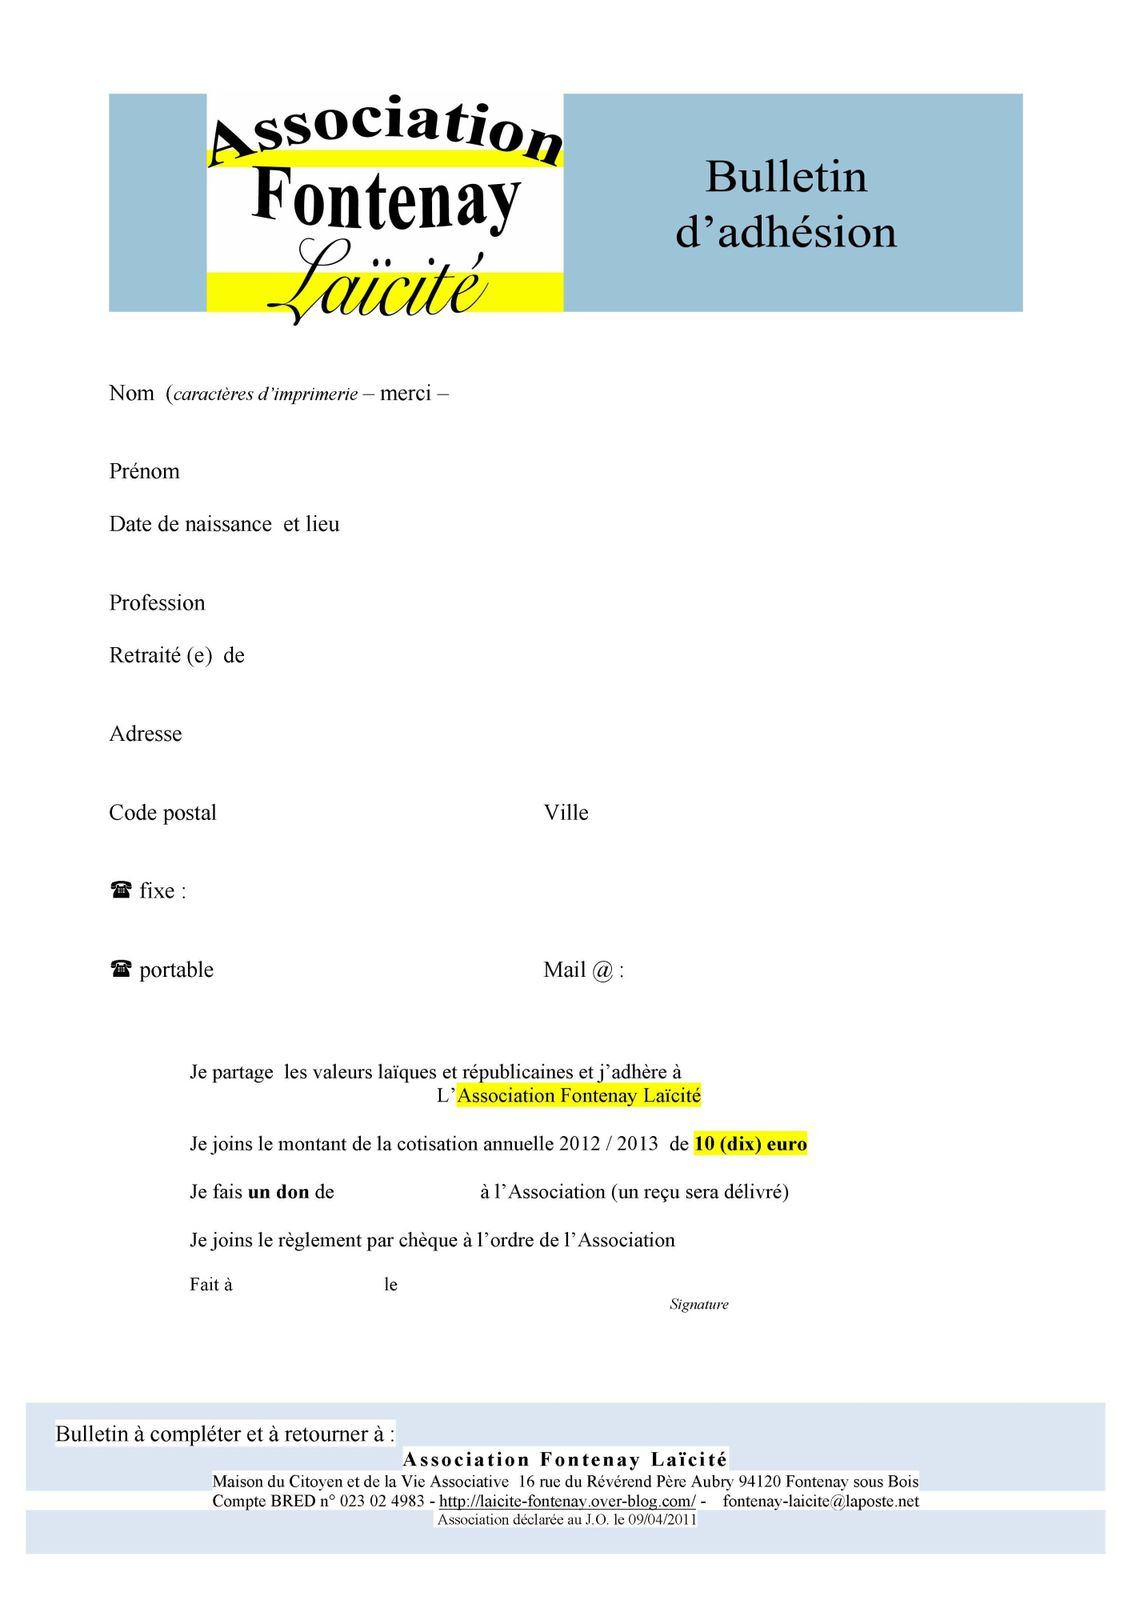 003 Feuille ADHESION 2013